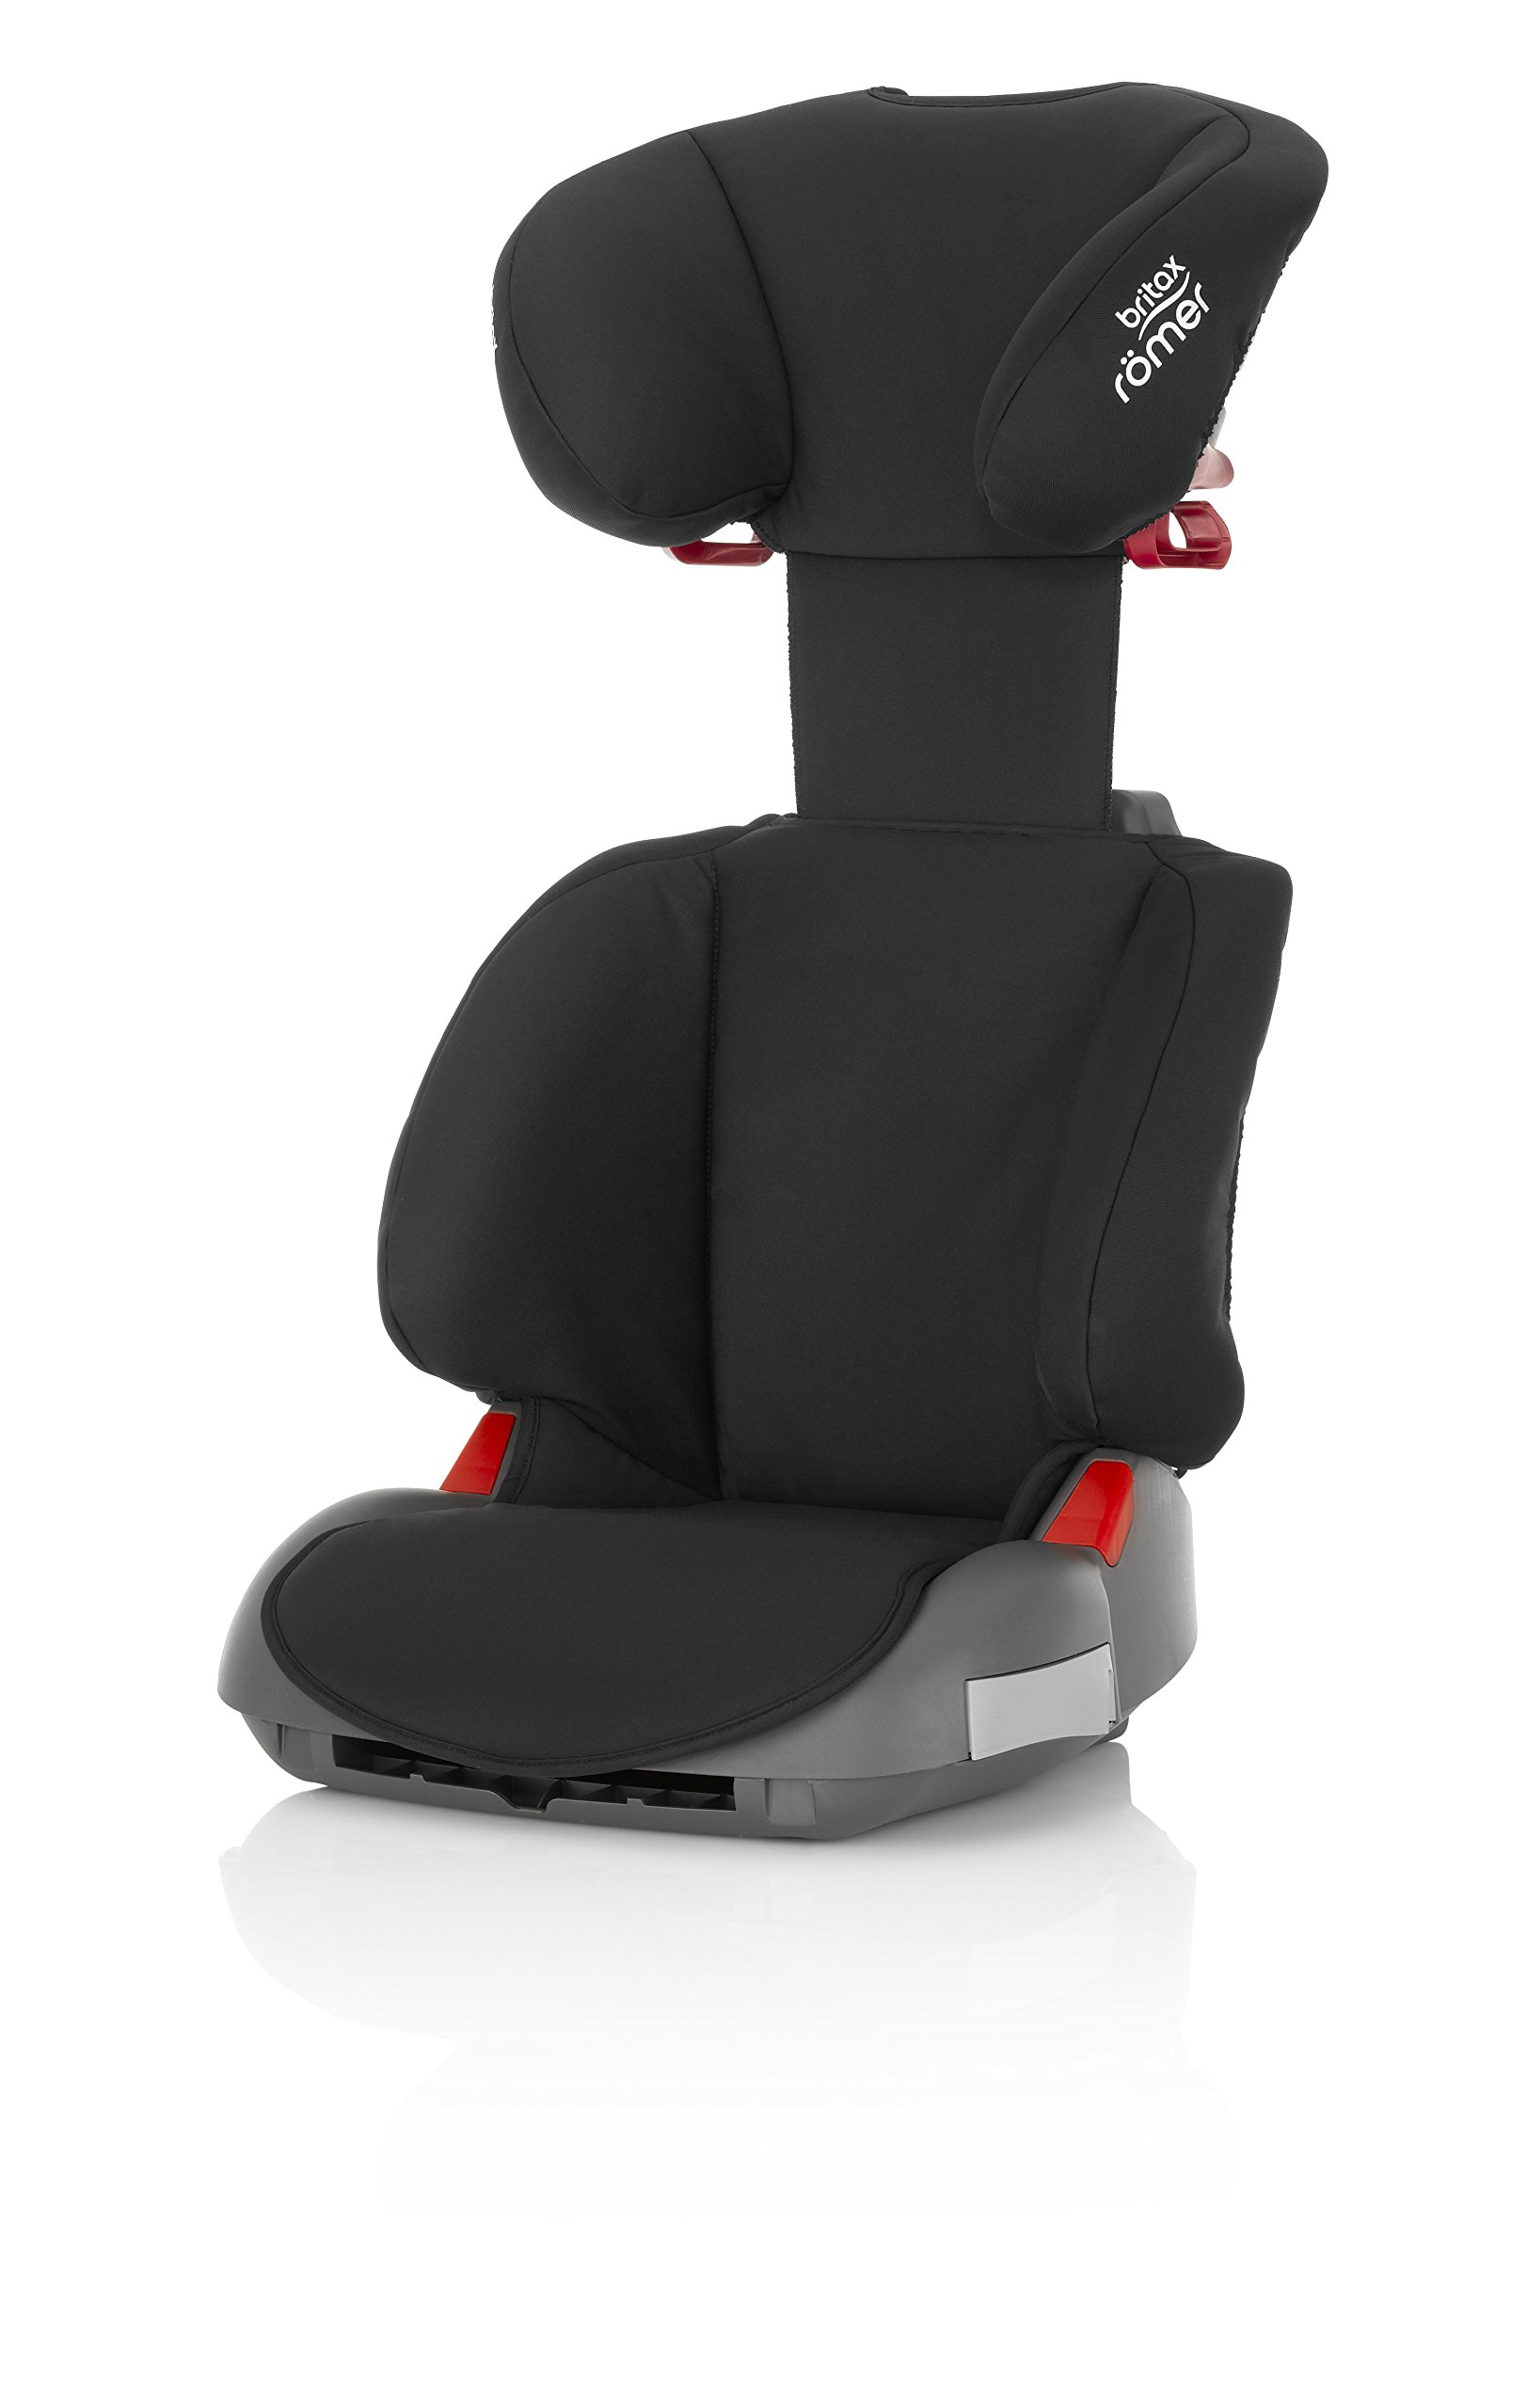 Britax Römer ADVENTURE Group 2-3 (15-36kg) Car Seat - Cosmos Black Britax Römer Intuitively positioned seat belt guides for straightforward installation every time. Machine washable seat cover that can easily be removed, so you can clean up quick and get on your way Reassurance of highback booster safety with side impact protection Lightweight, easily transferable shell 5